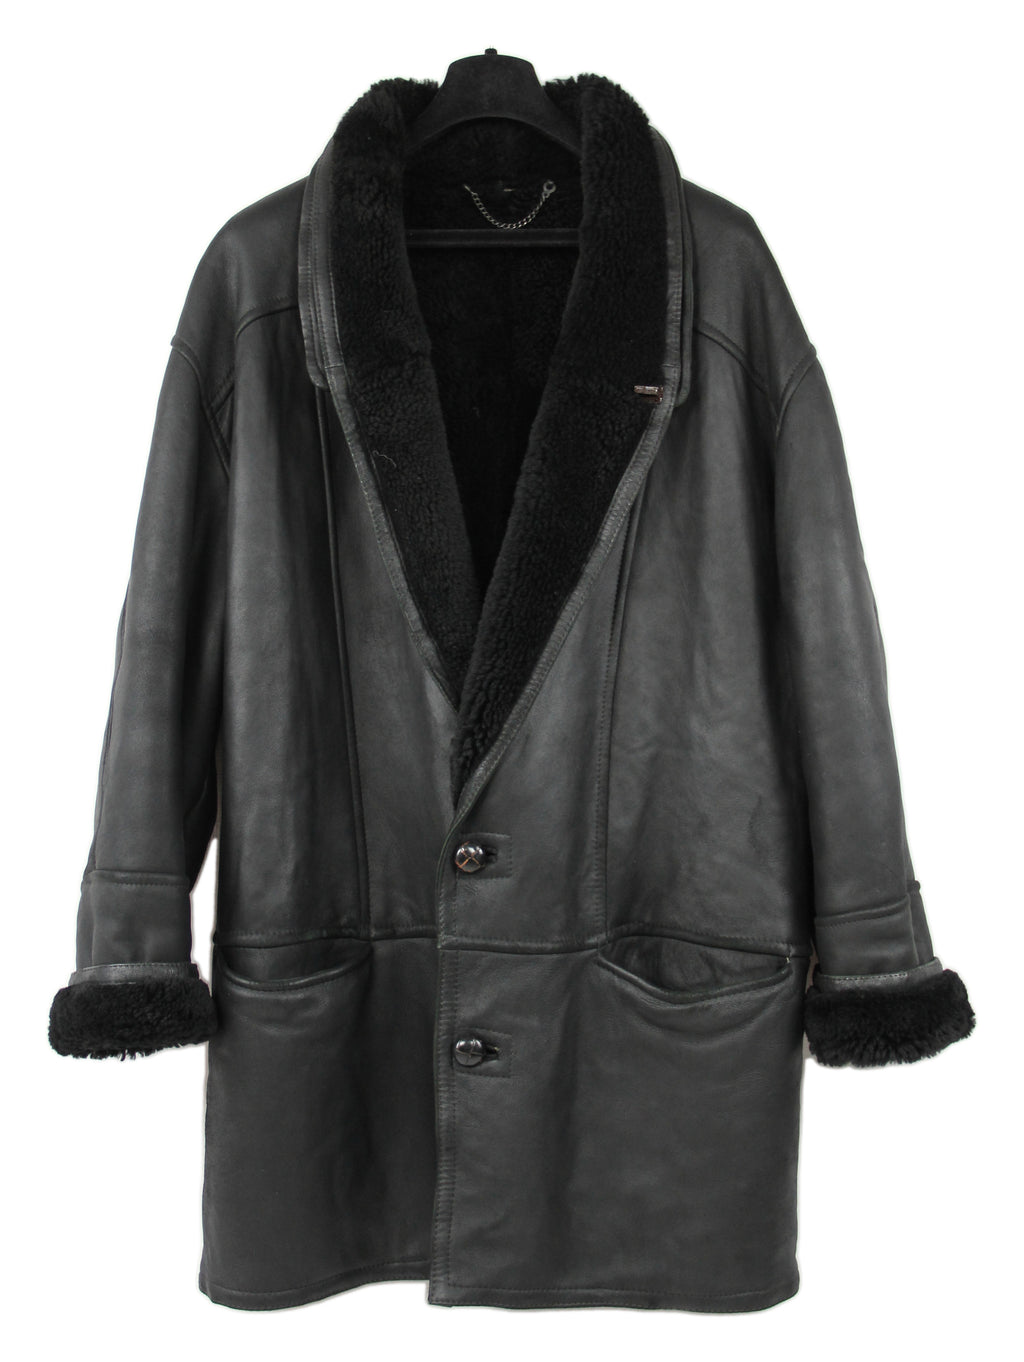 Black Leather Shawl Collar Lambskin Shearling Coat, SIZE XXL